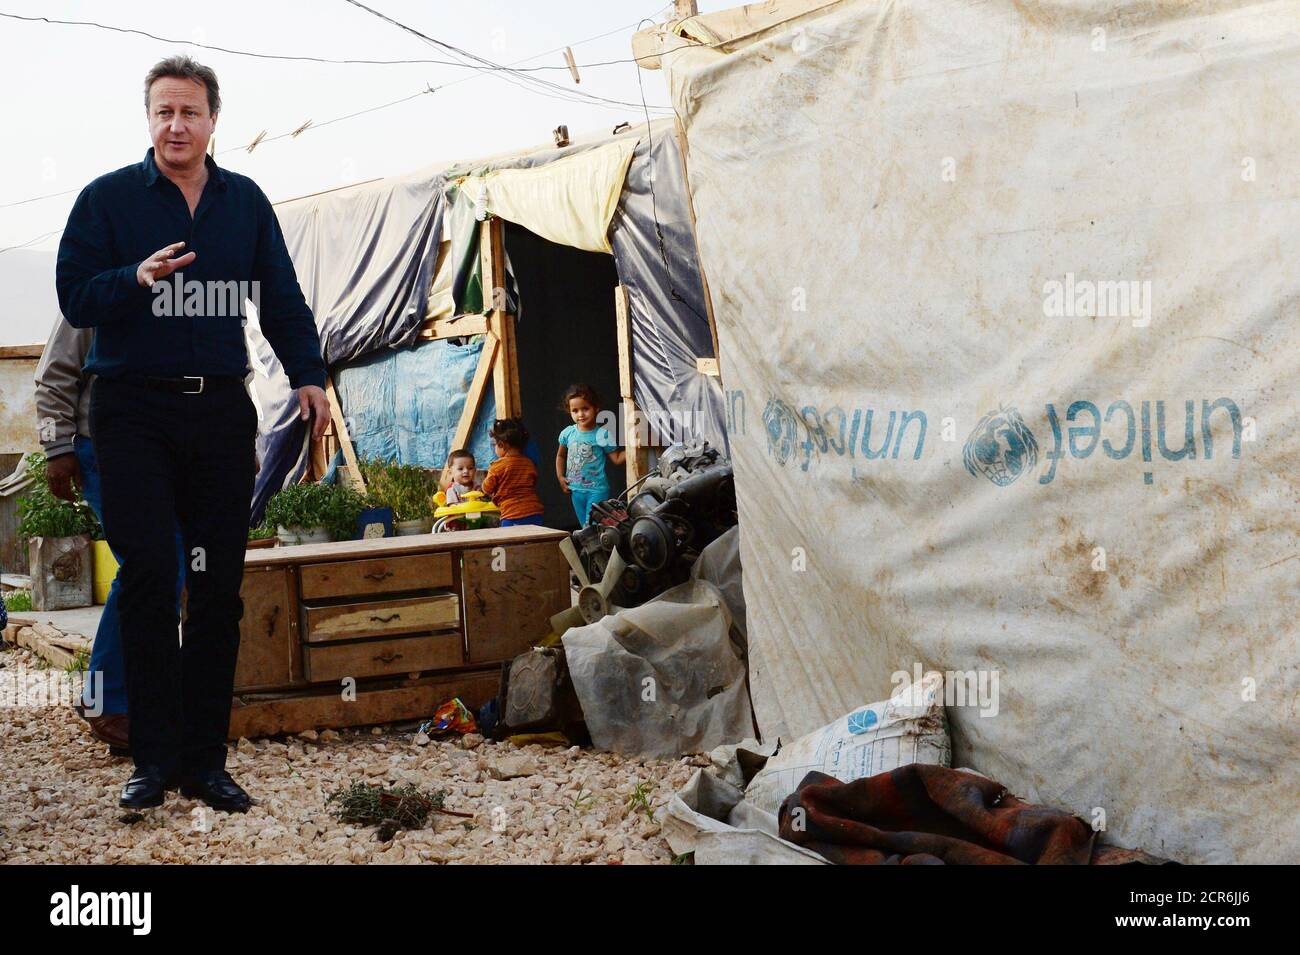 Prime Minister David Cameron visits a Syrian refugee settlement camp in the Bekaa Valley in Lebanon, September 14, 2015. British Prime Minister David Cameron arrived in Beirut on Monday to visit refugees from the war in neighbouring Syria, which has driven well over a million people into Lebanon and tens of thousands towards Europe, Lebanese media reported. Cameron will visit refugees and then meet with his Lebanese counterpart Tammam Salam. Lebanon, where one in every four people is a refugee, is hosting the greatest number of refugees per capita of any country in the world. It has called on  Stock Photo